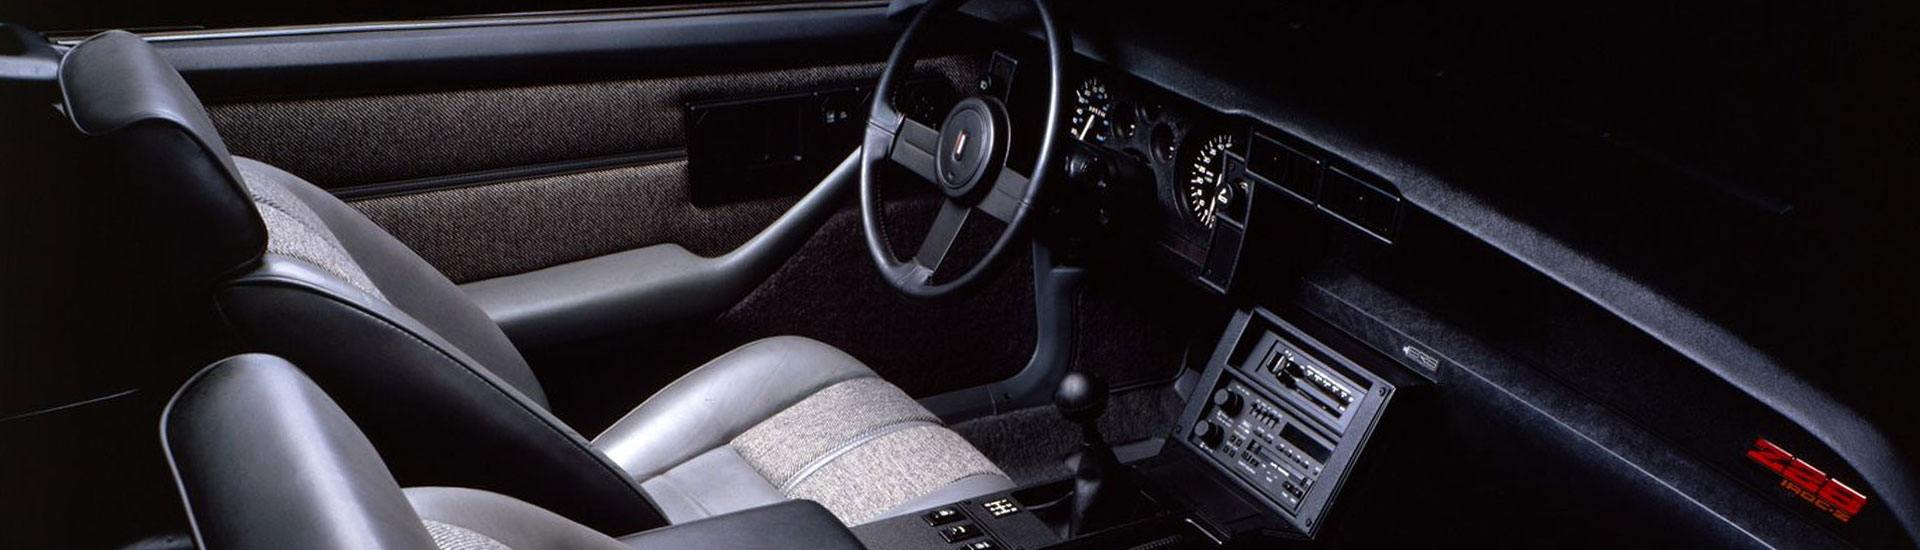 1988 Chevrolet Camaro Dash Kits